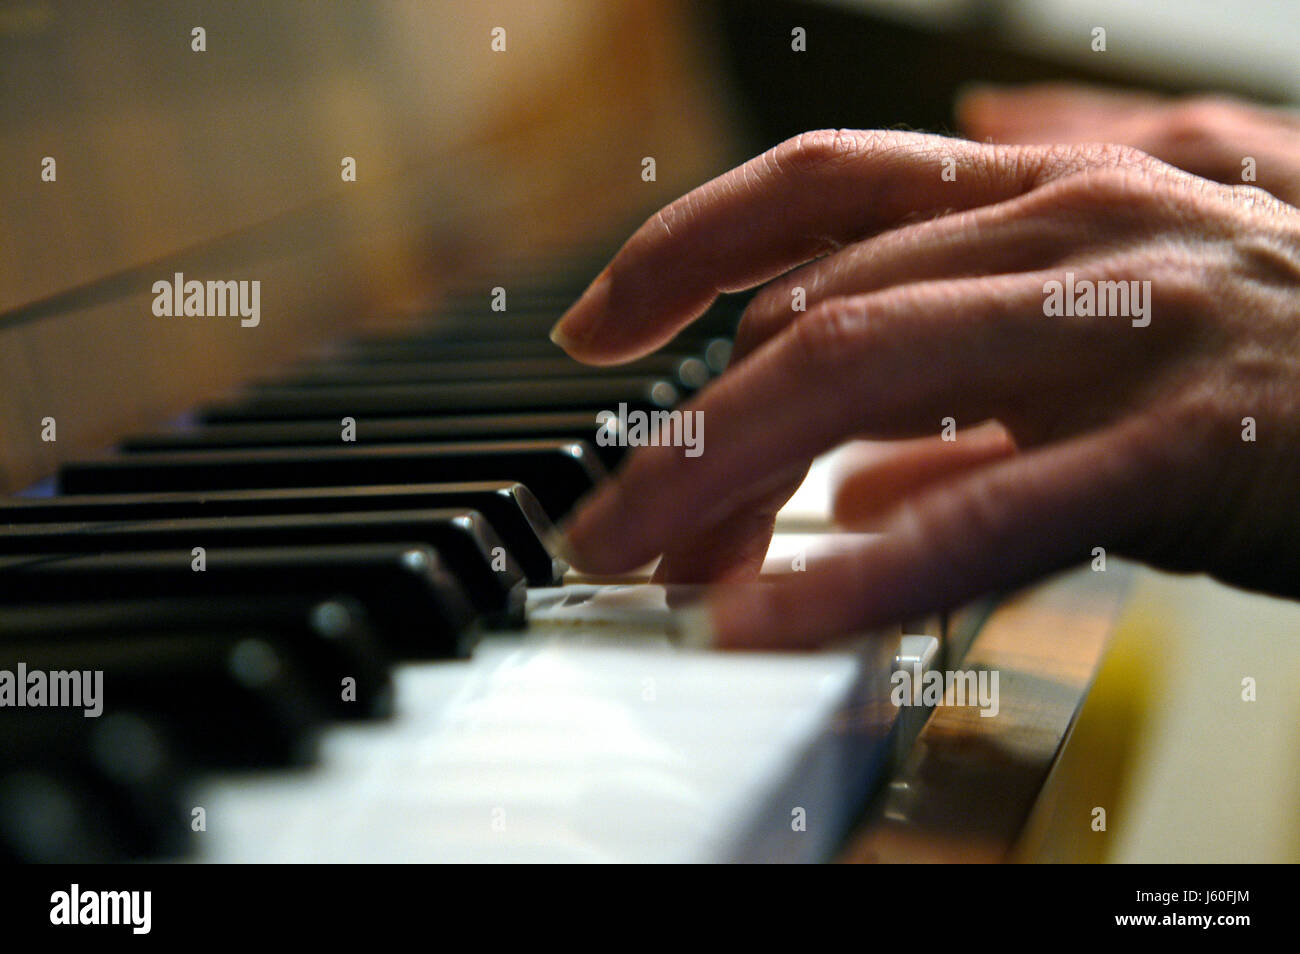 hand hands keyboard piano perform hand hands finger sound make music musical - Stock Image